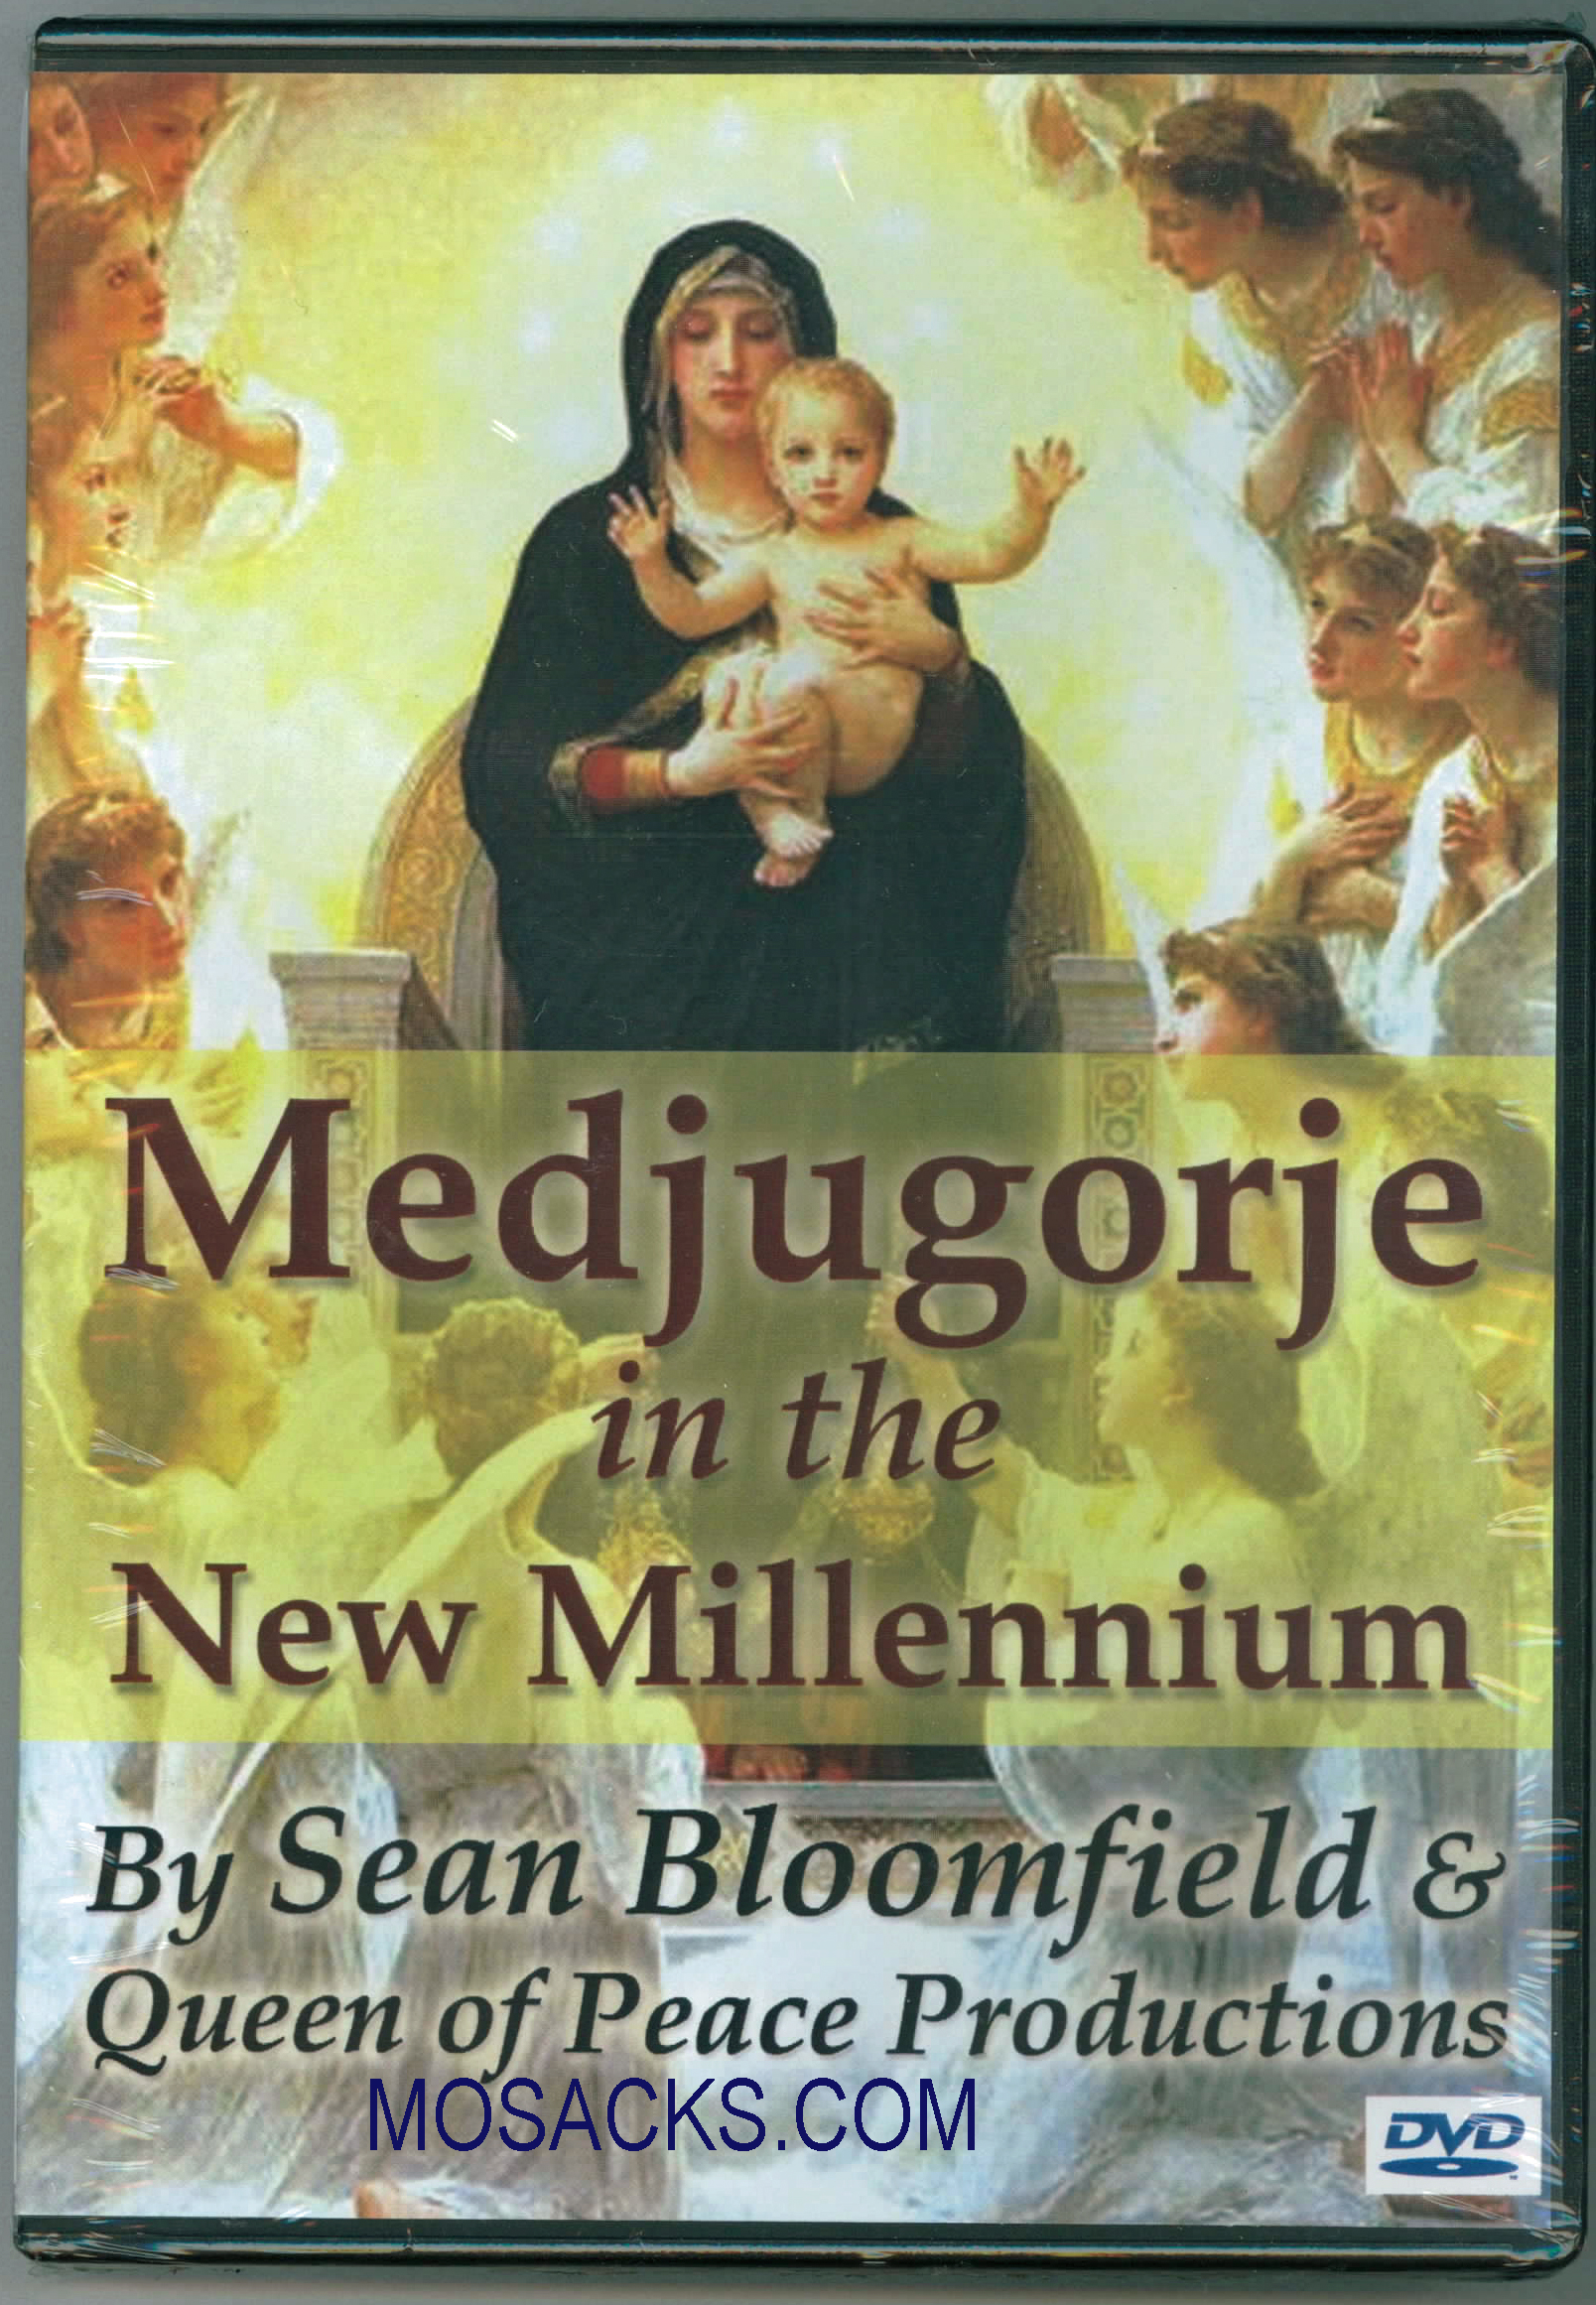 DVD-Medjugorje In The New Millennium Queen of Peace Productions 463-QOPP1